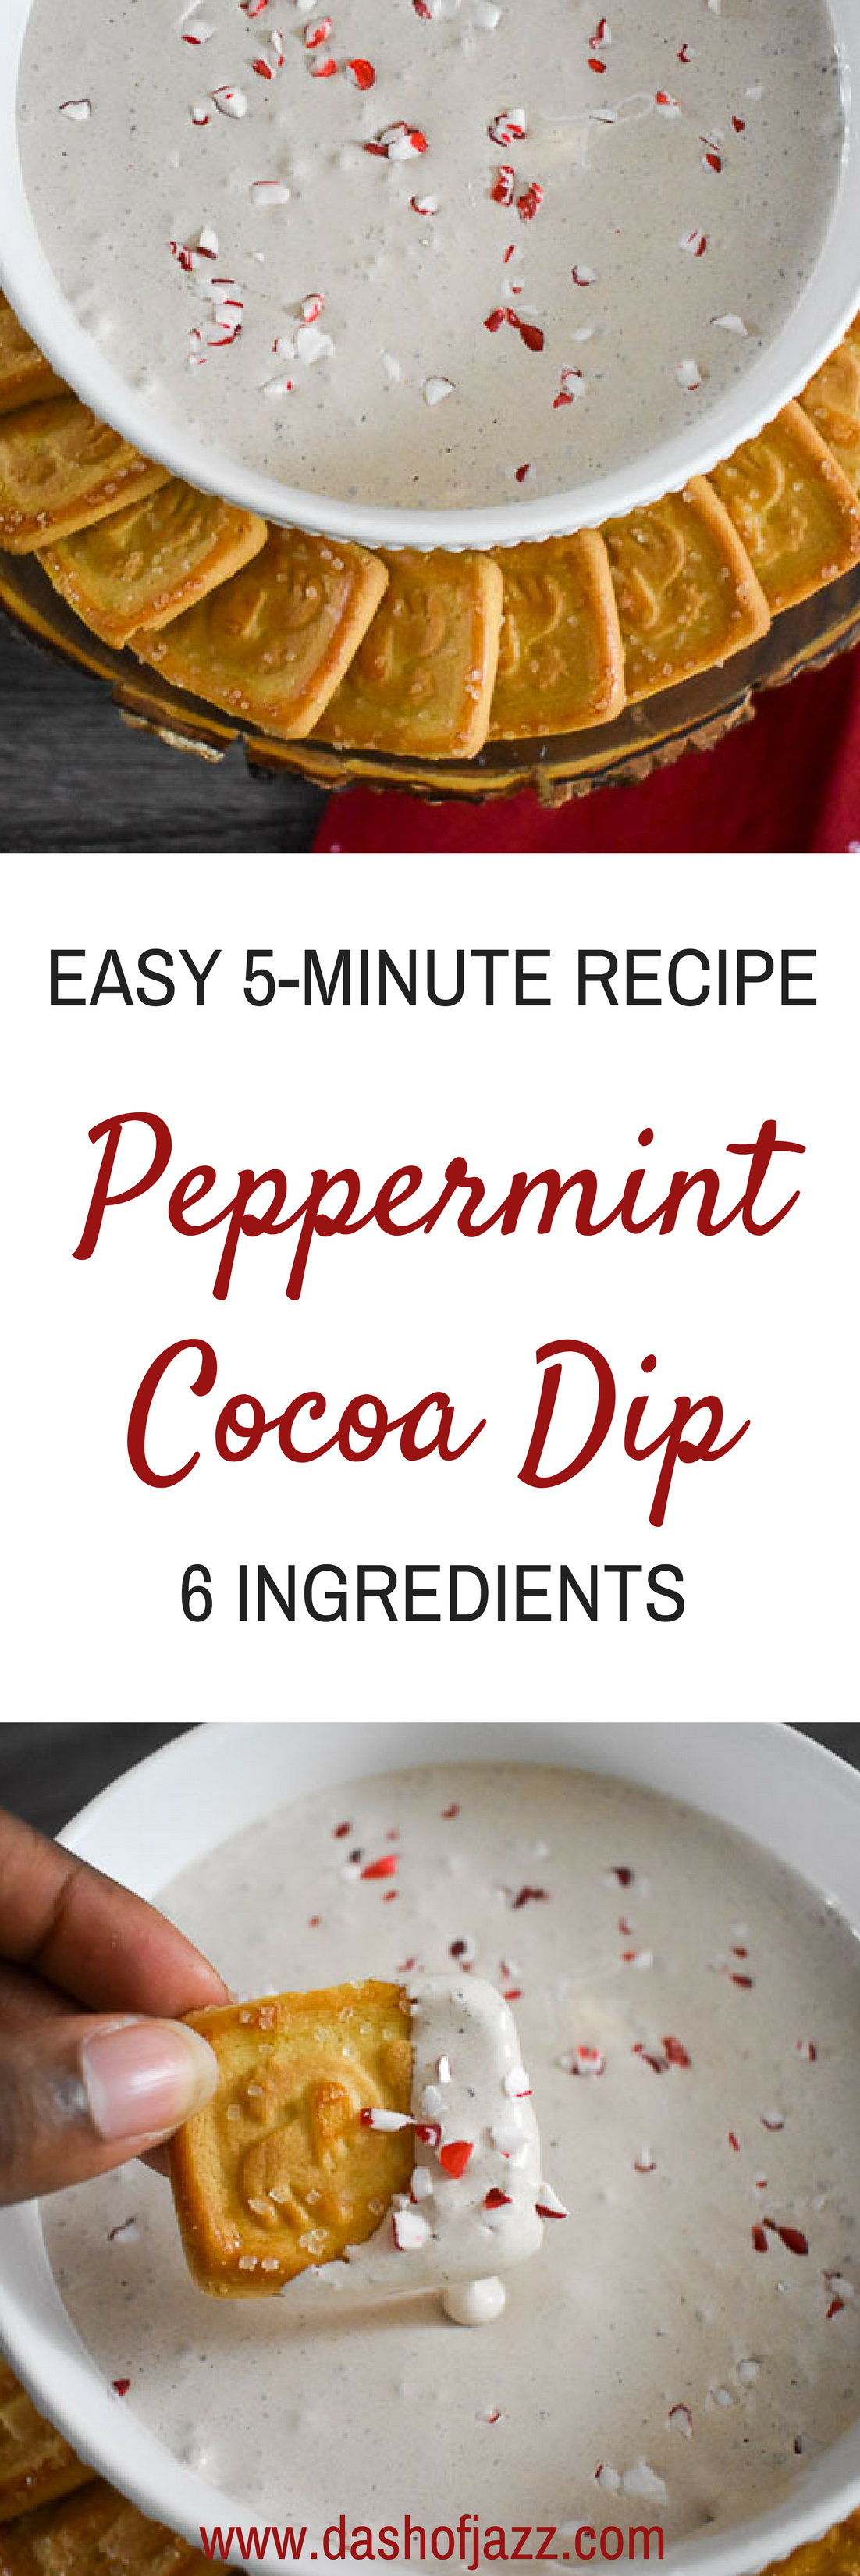 An easy, six-ingredient peppermint cocoa dip recipe perfect for the holidays! Recipe by Dash of Jazz #MyItalianMoment #ad #appetizer #ChristmasRecipe